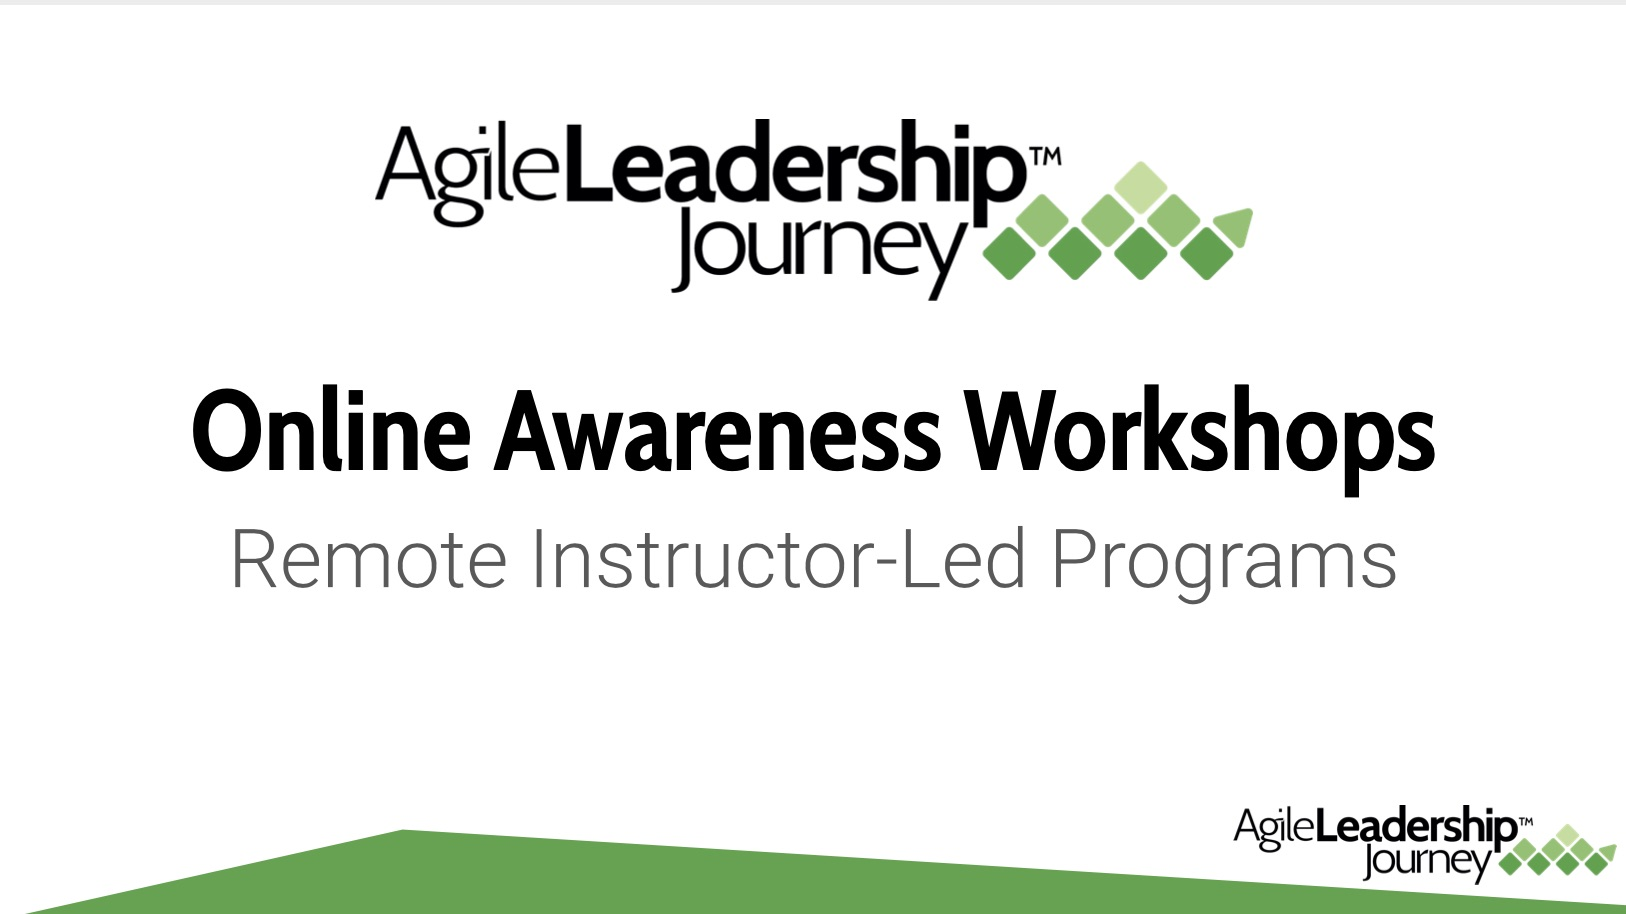 ALJ_Online_Agile_Leadership_Awareness_Workshops_pdf__page_1_of_20_